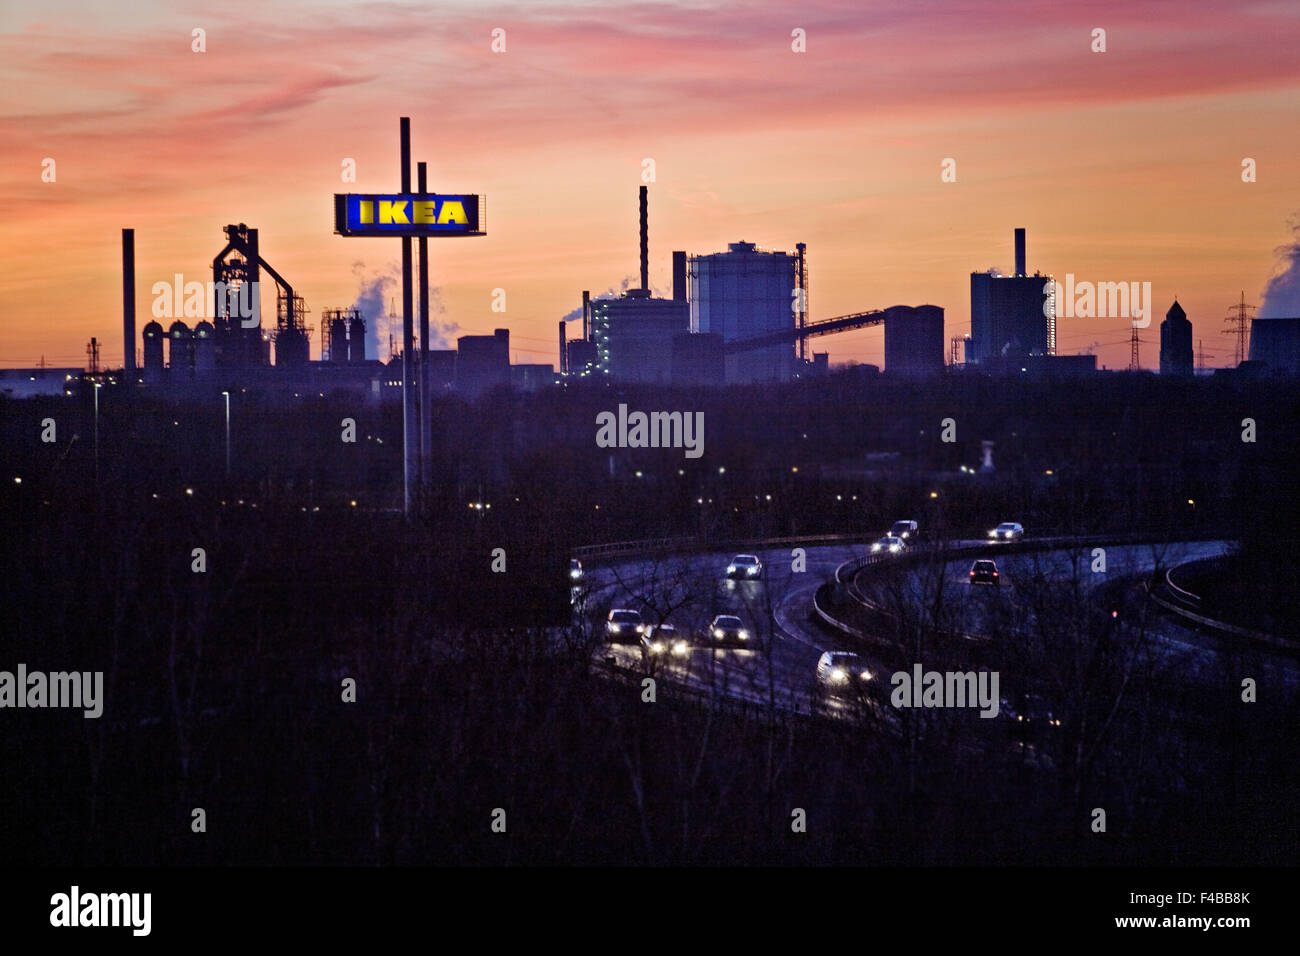 IKEA, industrial, highway A42, Germany. - Stock Image